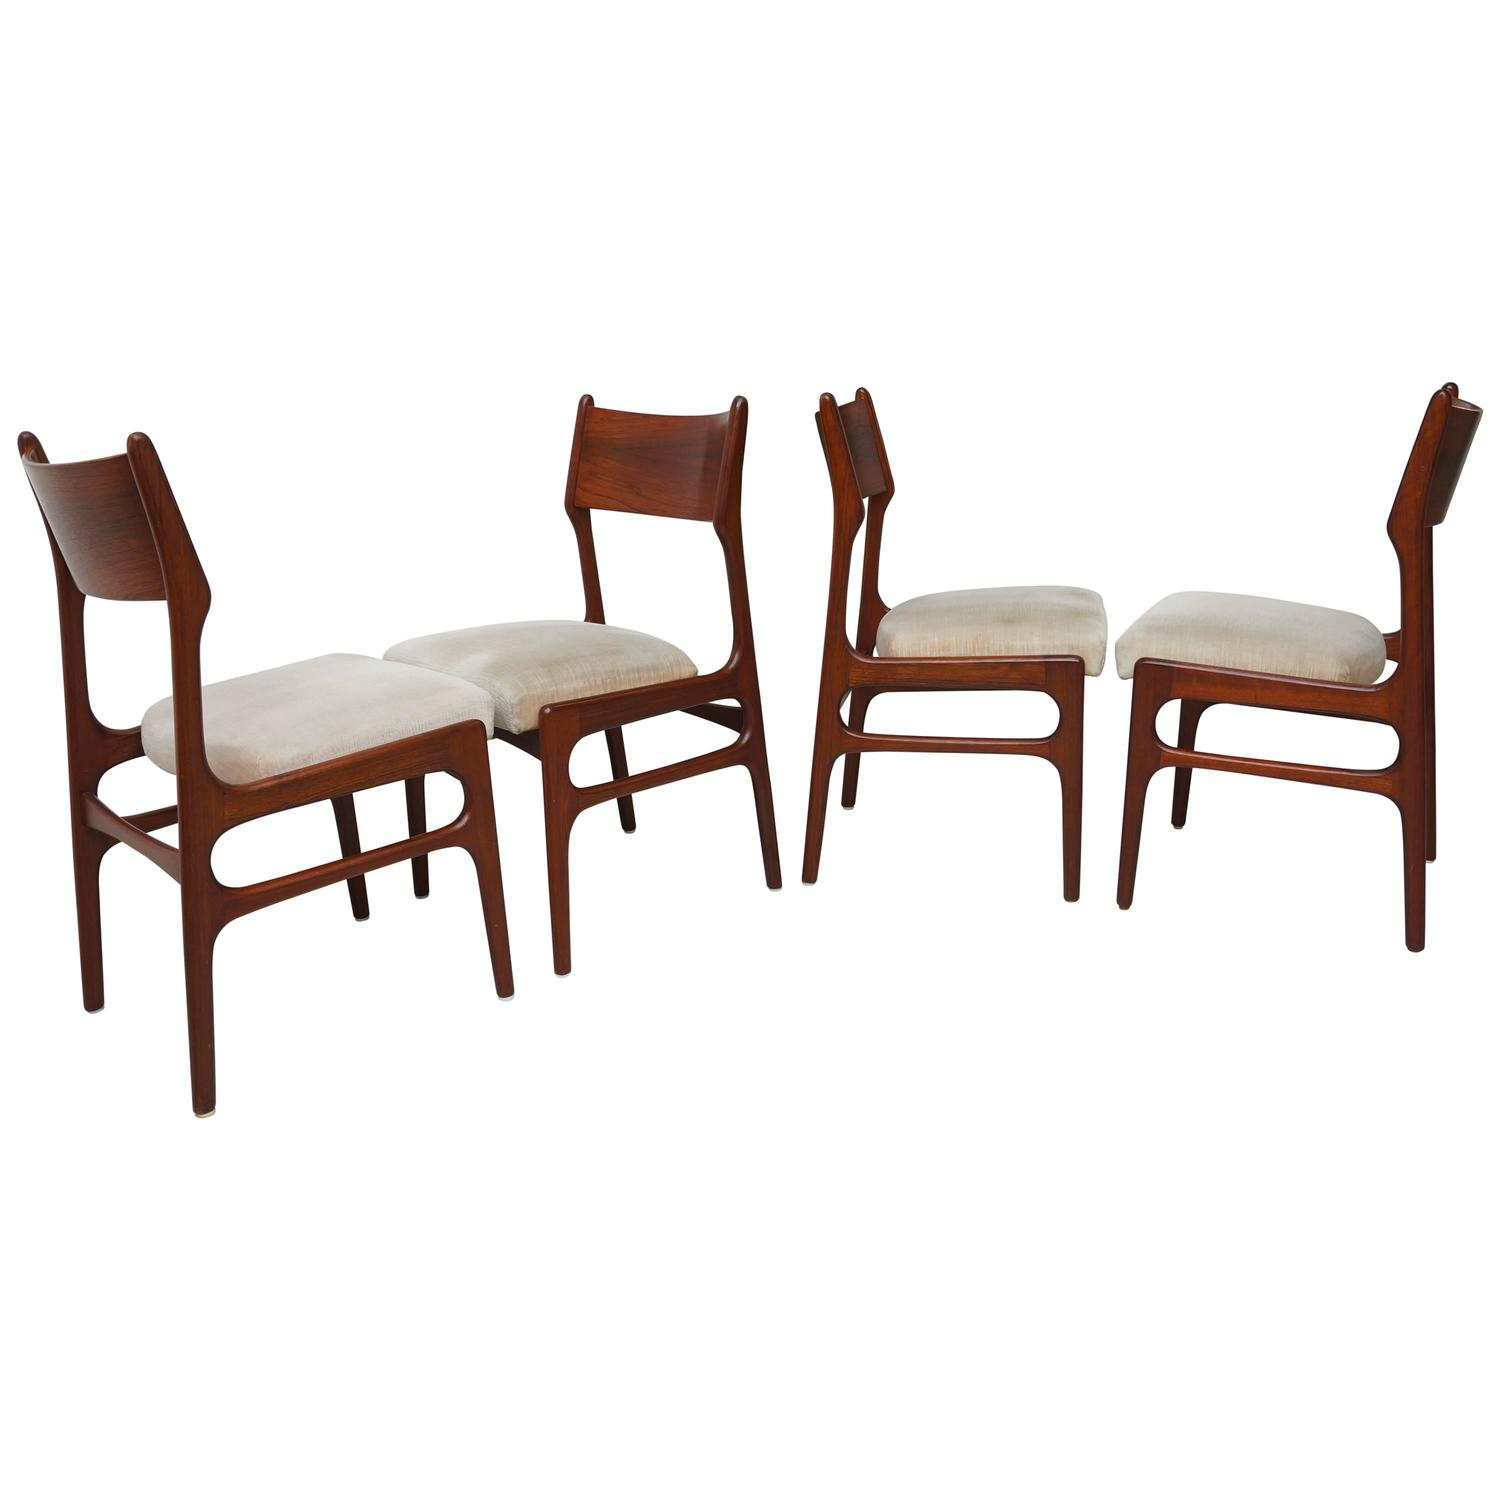 Four Mid-Century European Dining Chairs Mahogany, 1950s